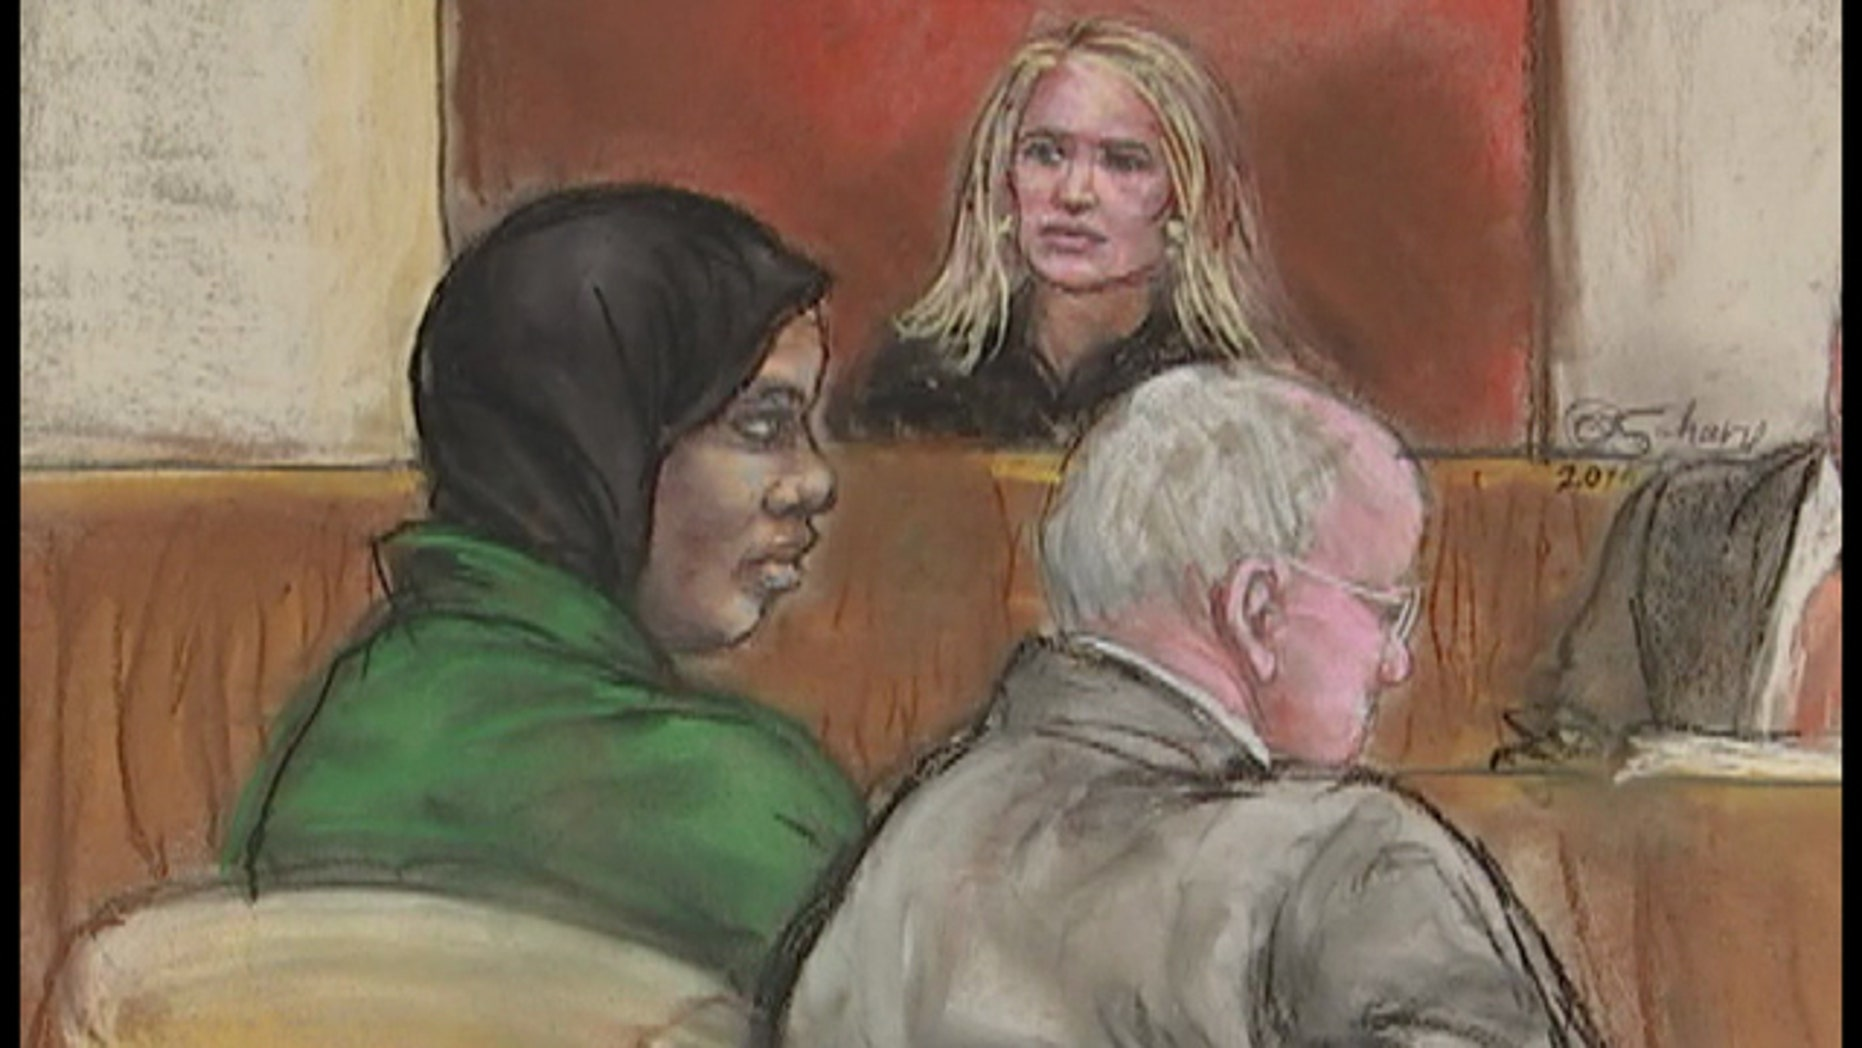 Keonna Thomas pleaded guilty last year to attempting to provide material support to a terror group.